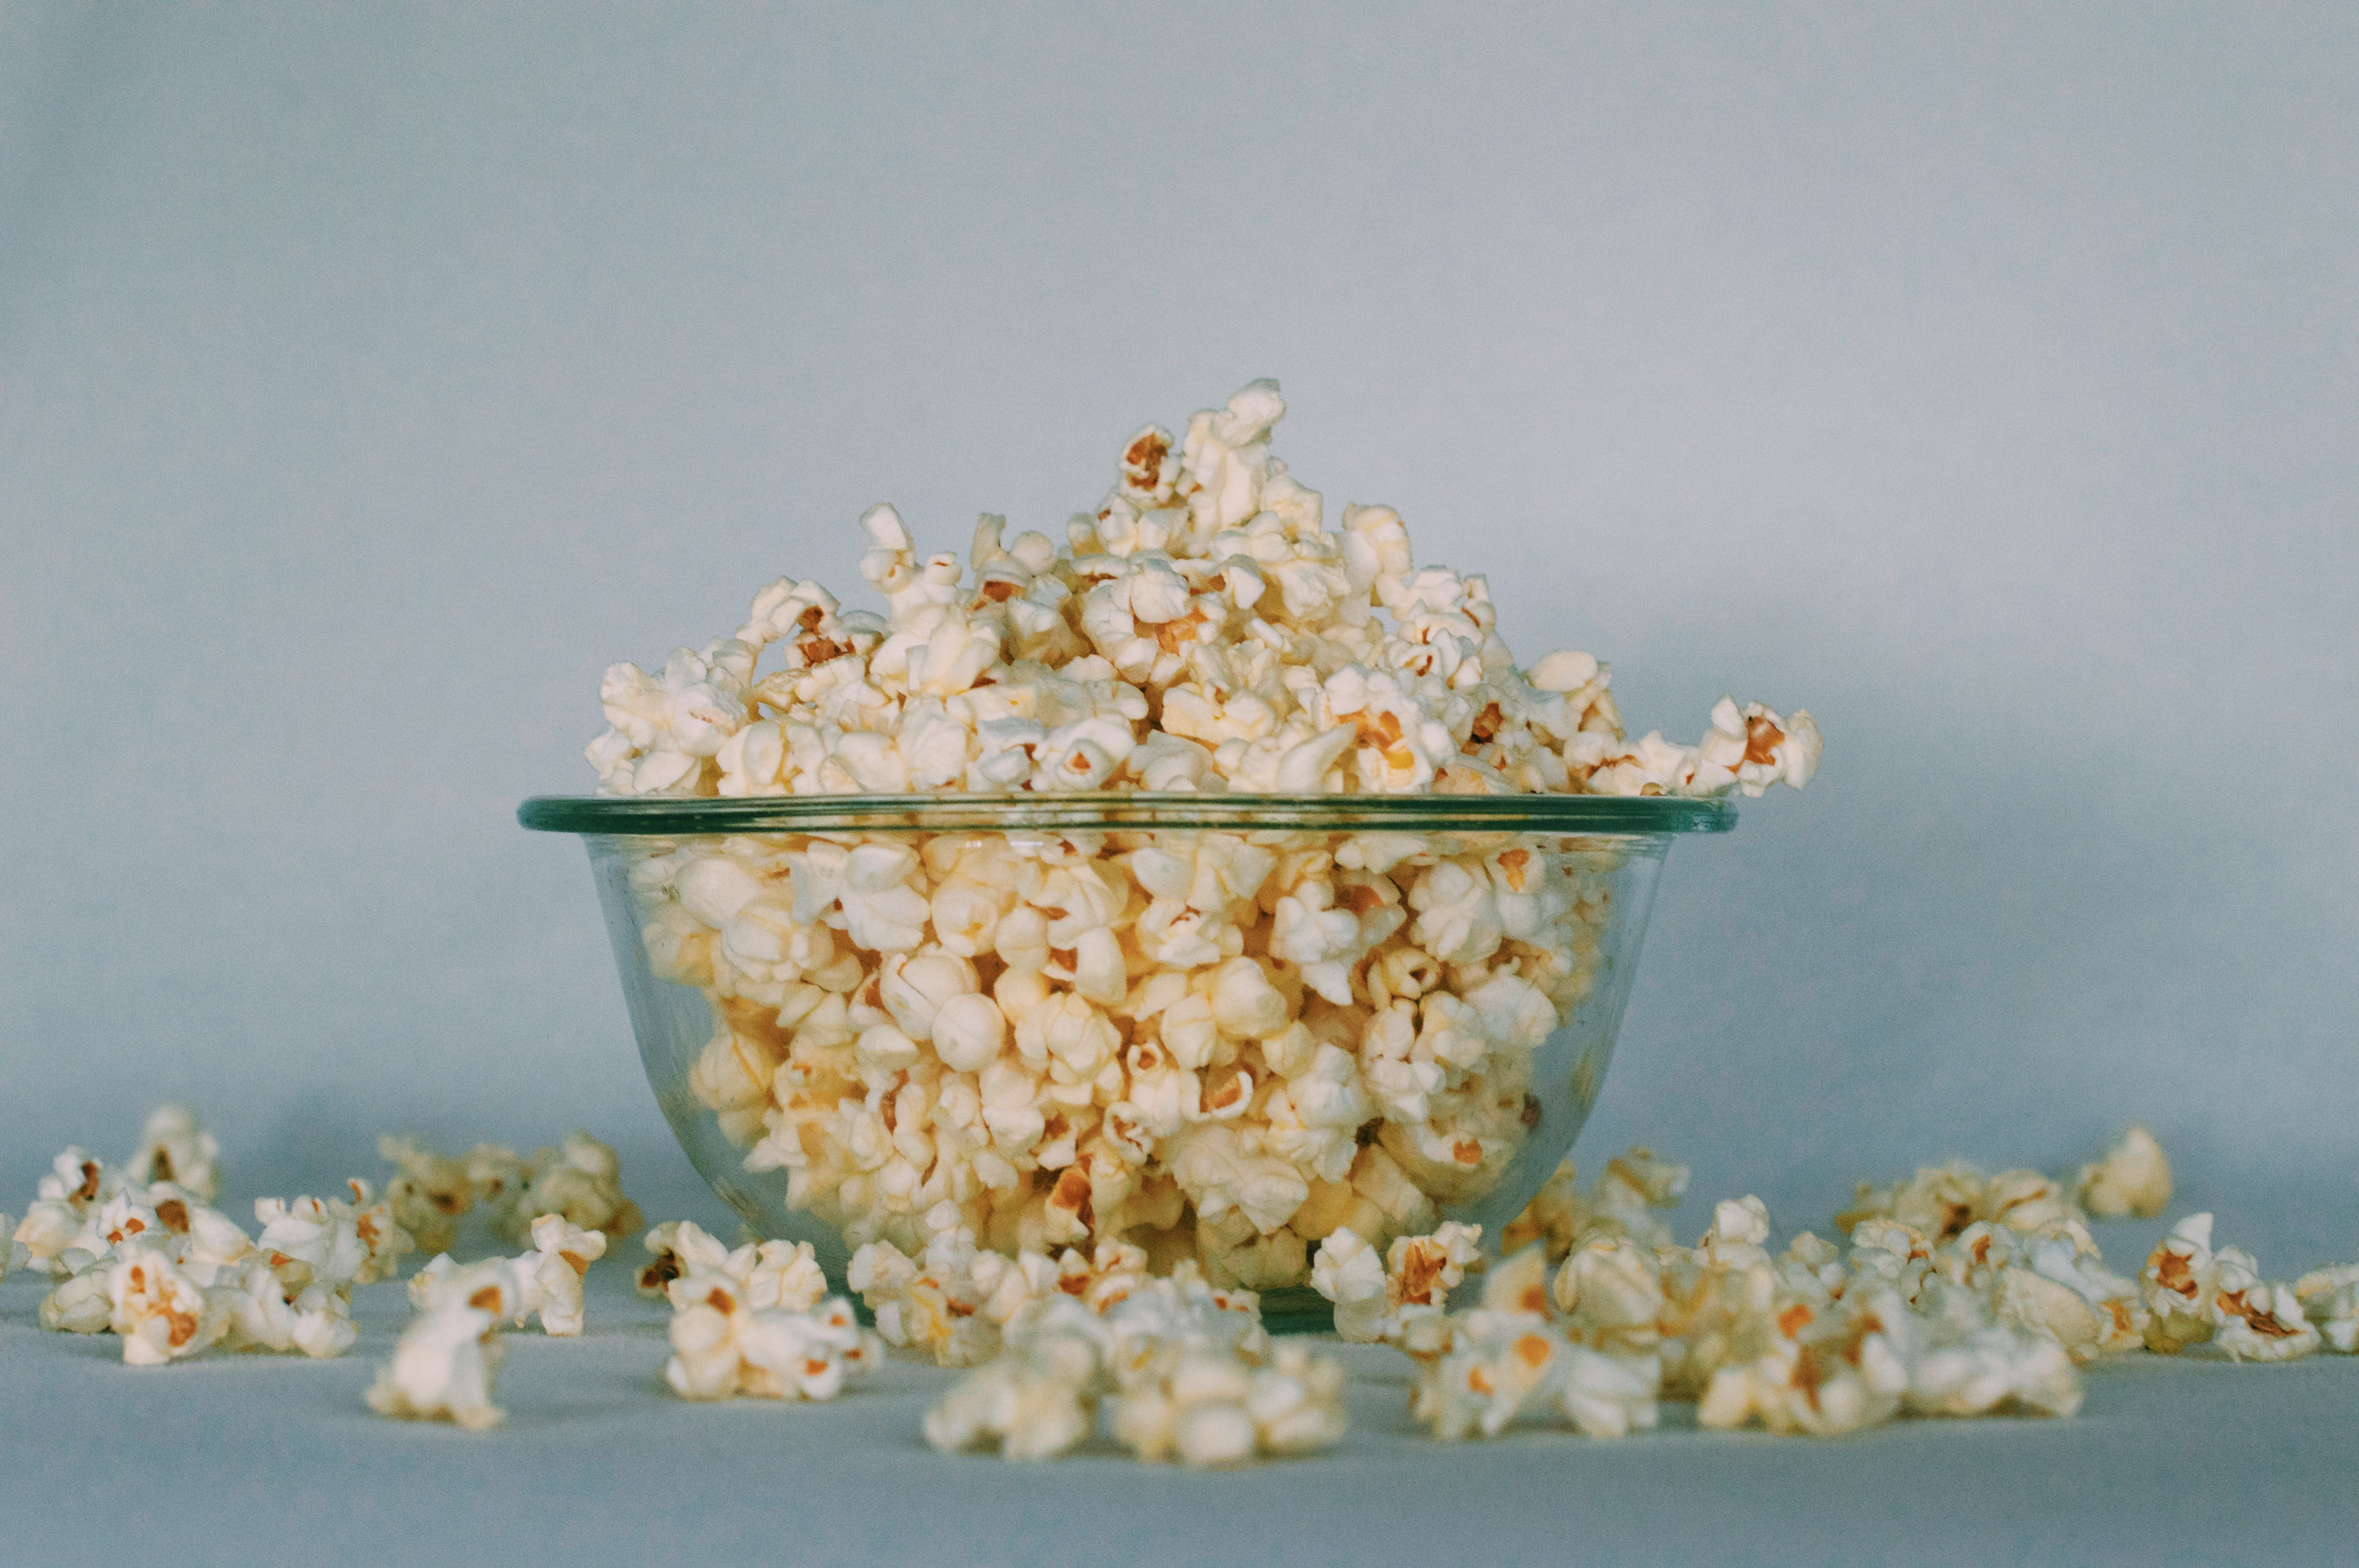 Popcorn flowing out of glass bowl